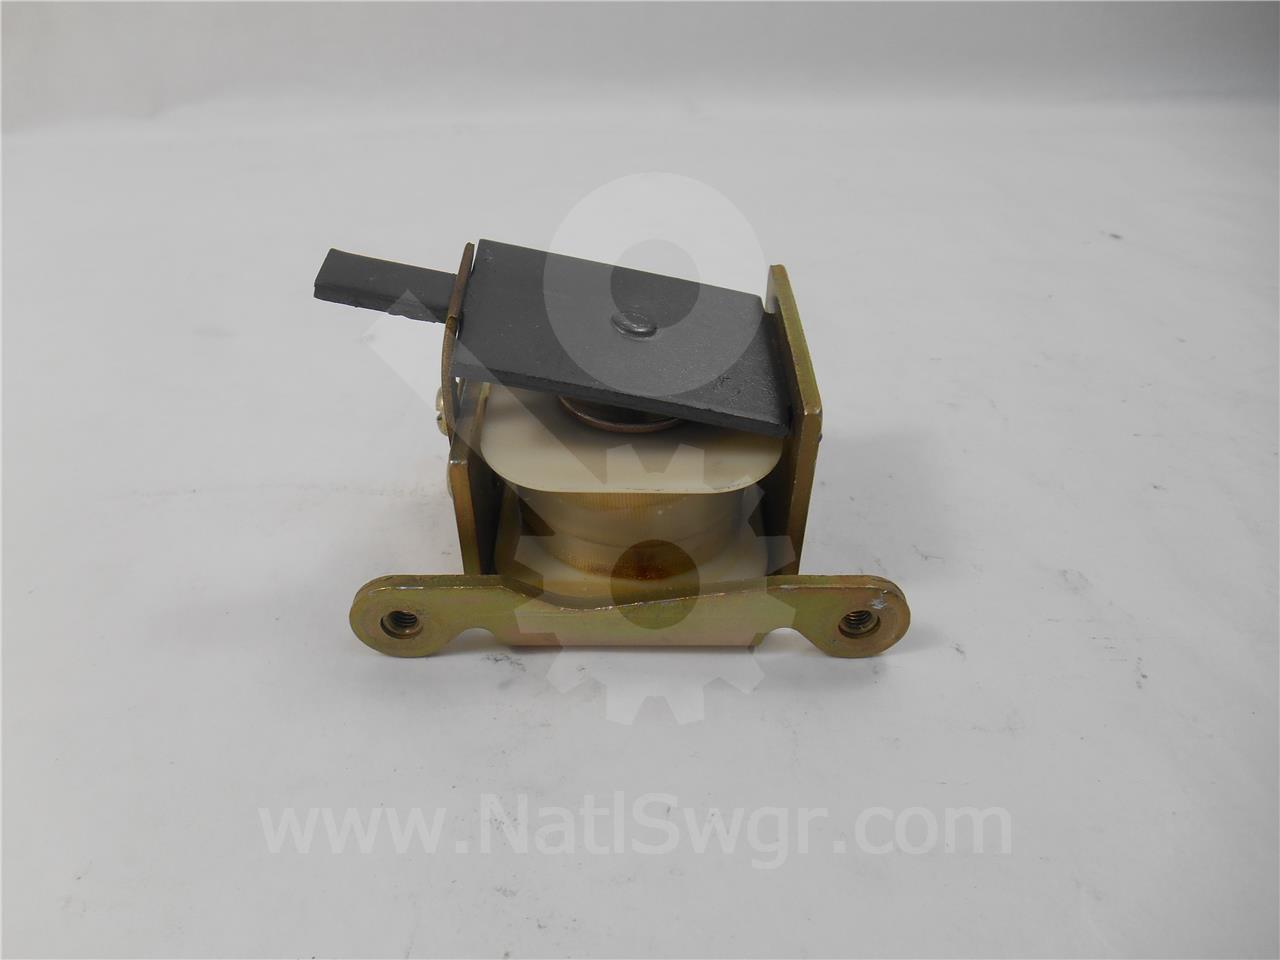 WH 120VAC SHUNT TRIP COIL ASSEMBLY